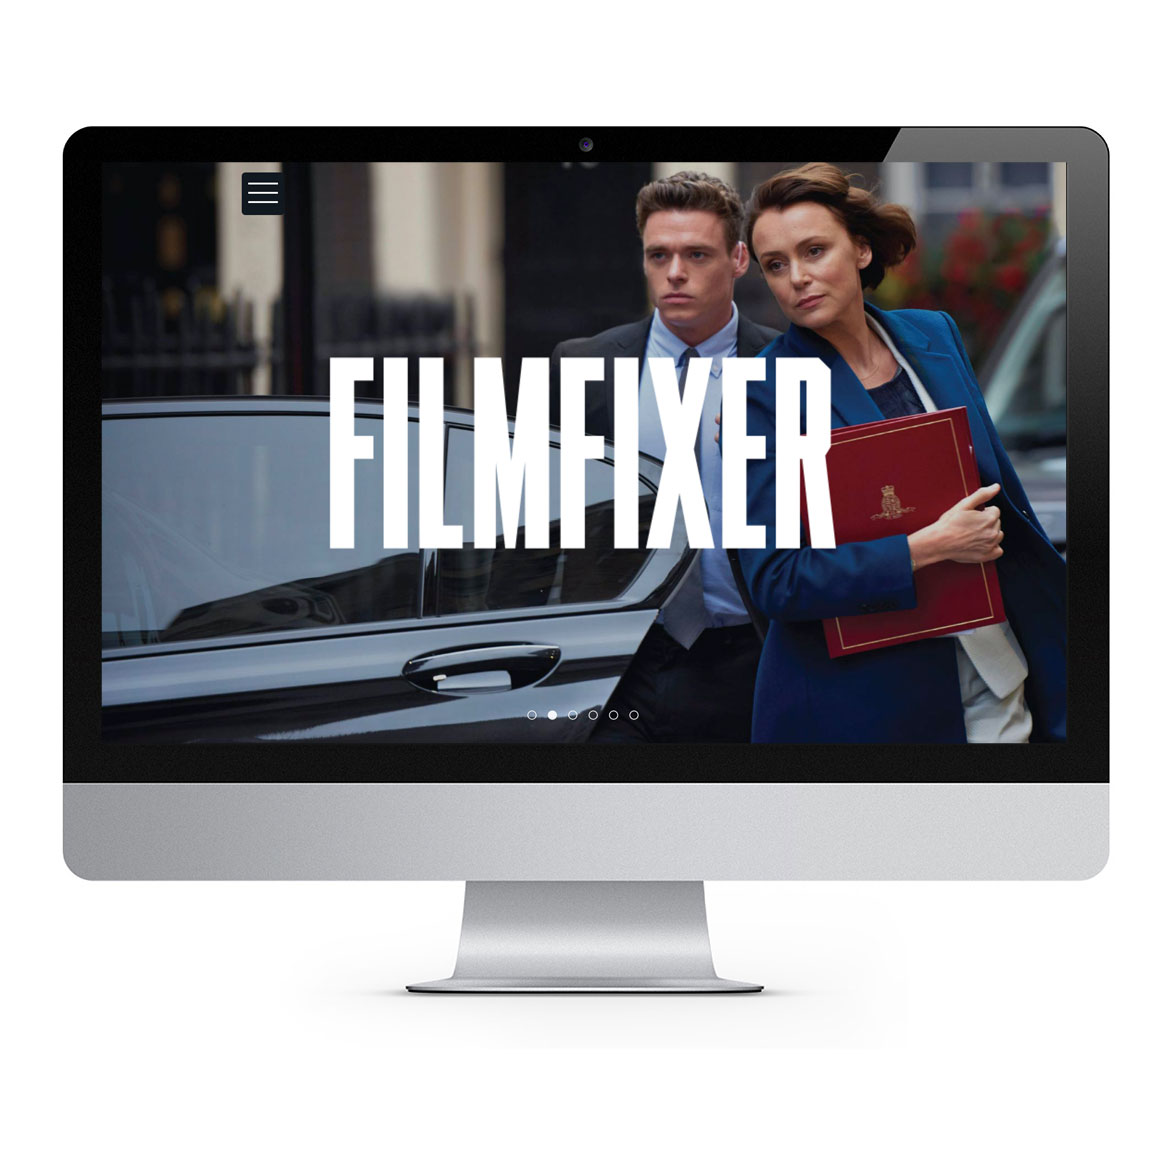 Filmfixer manages 16 London boroughs as well as the Lee Valley portfolio and seven district councils in Suffolk. The portfolio also includes many private clients such as Peabody, Butlers Wharf.